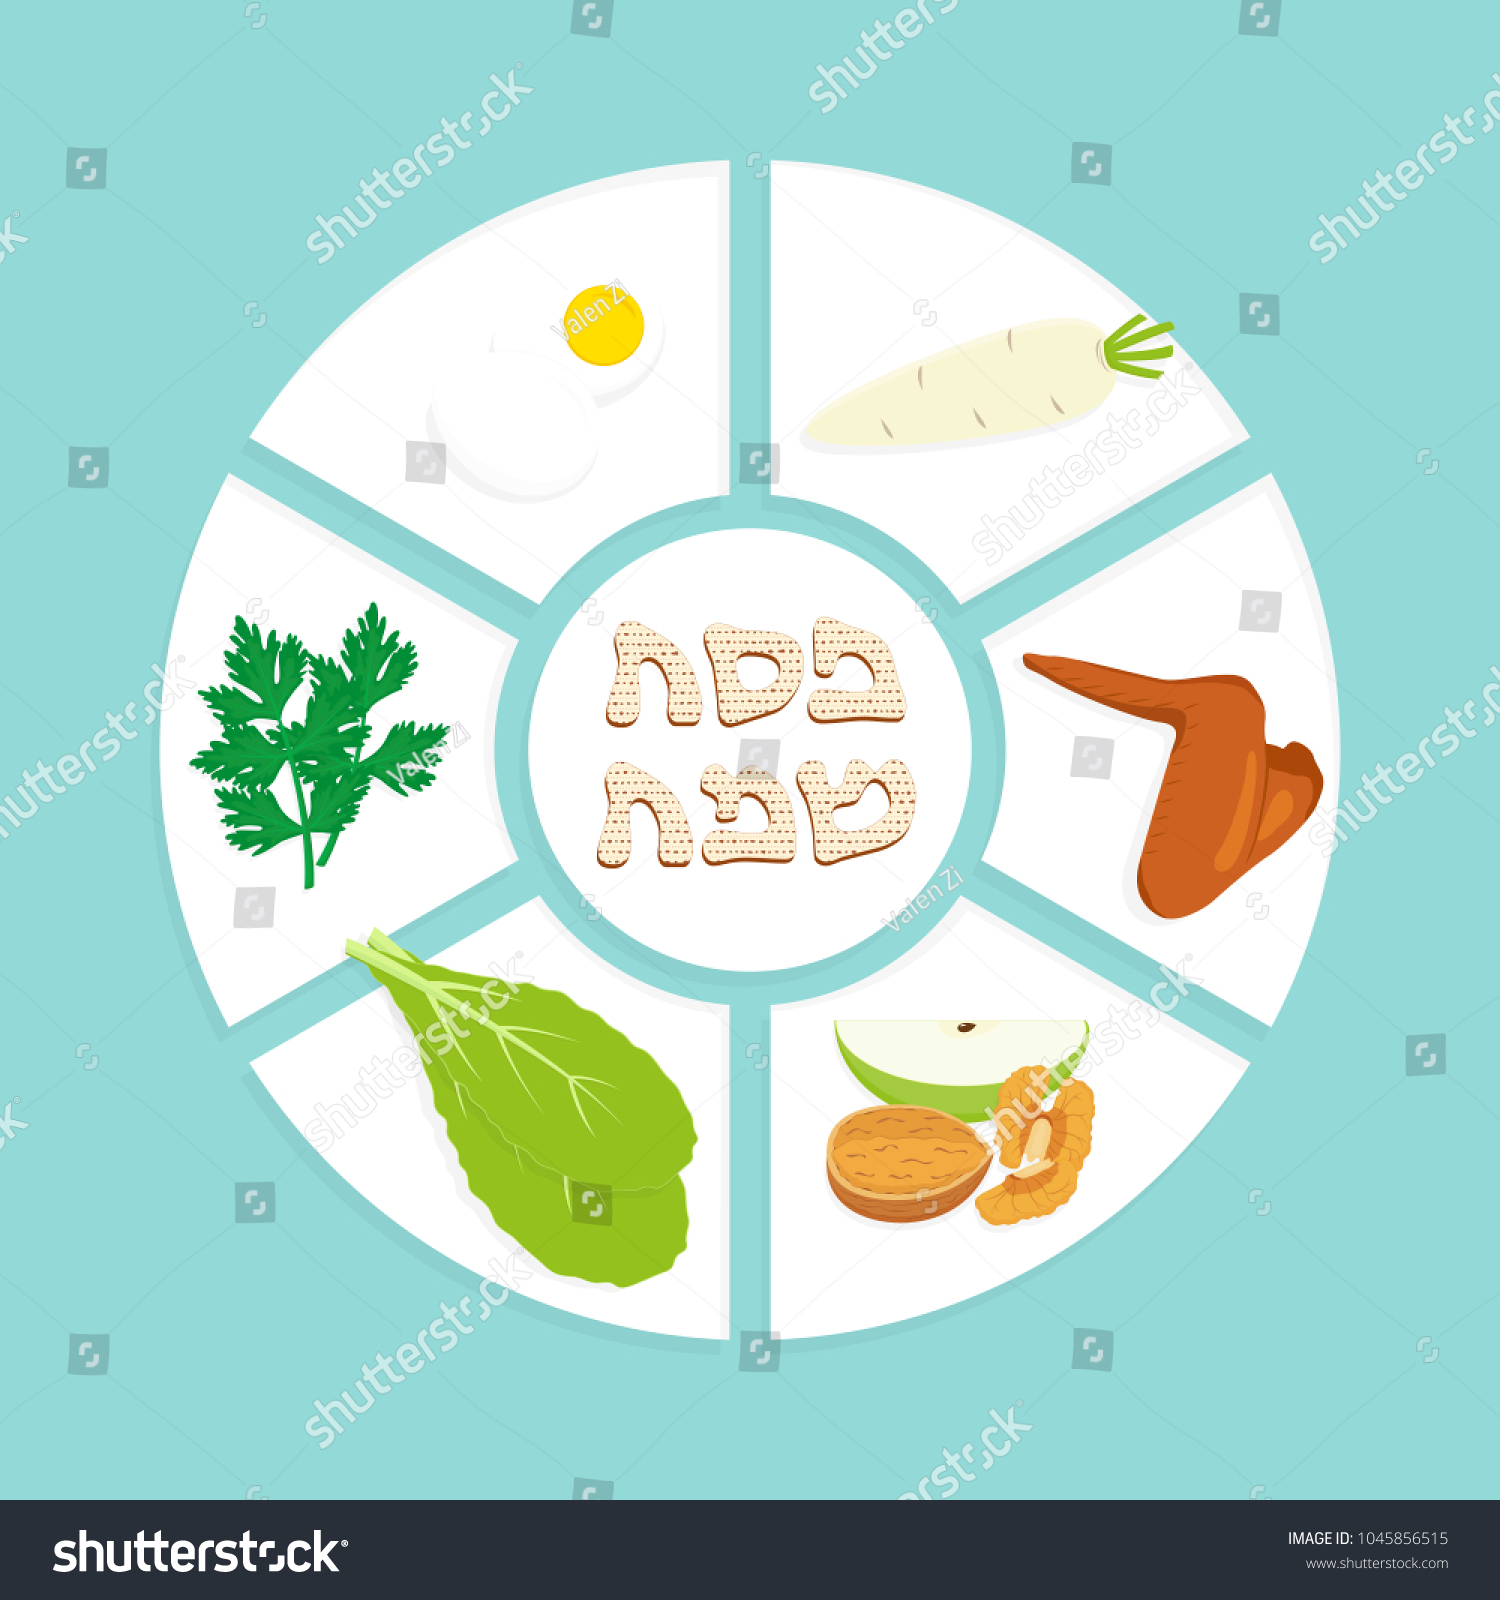 Passover Seder Plate Holiday Symbolic Foods Stock Vector Royalty